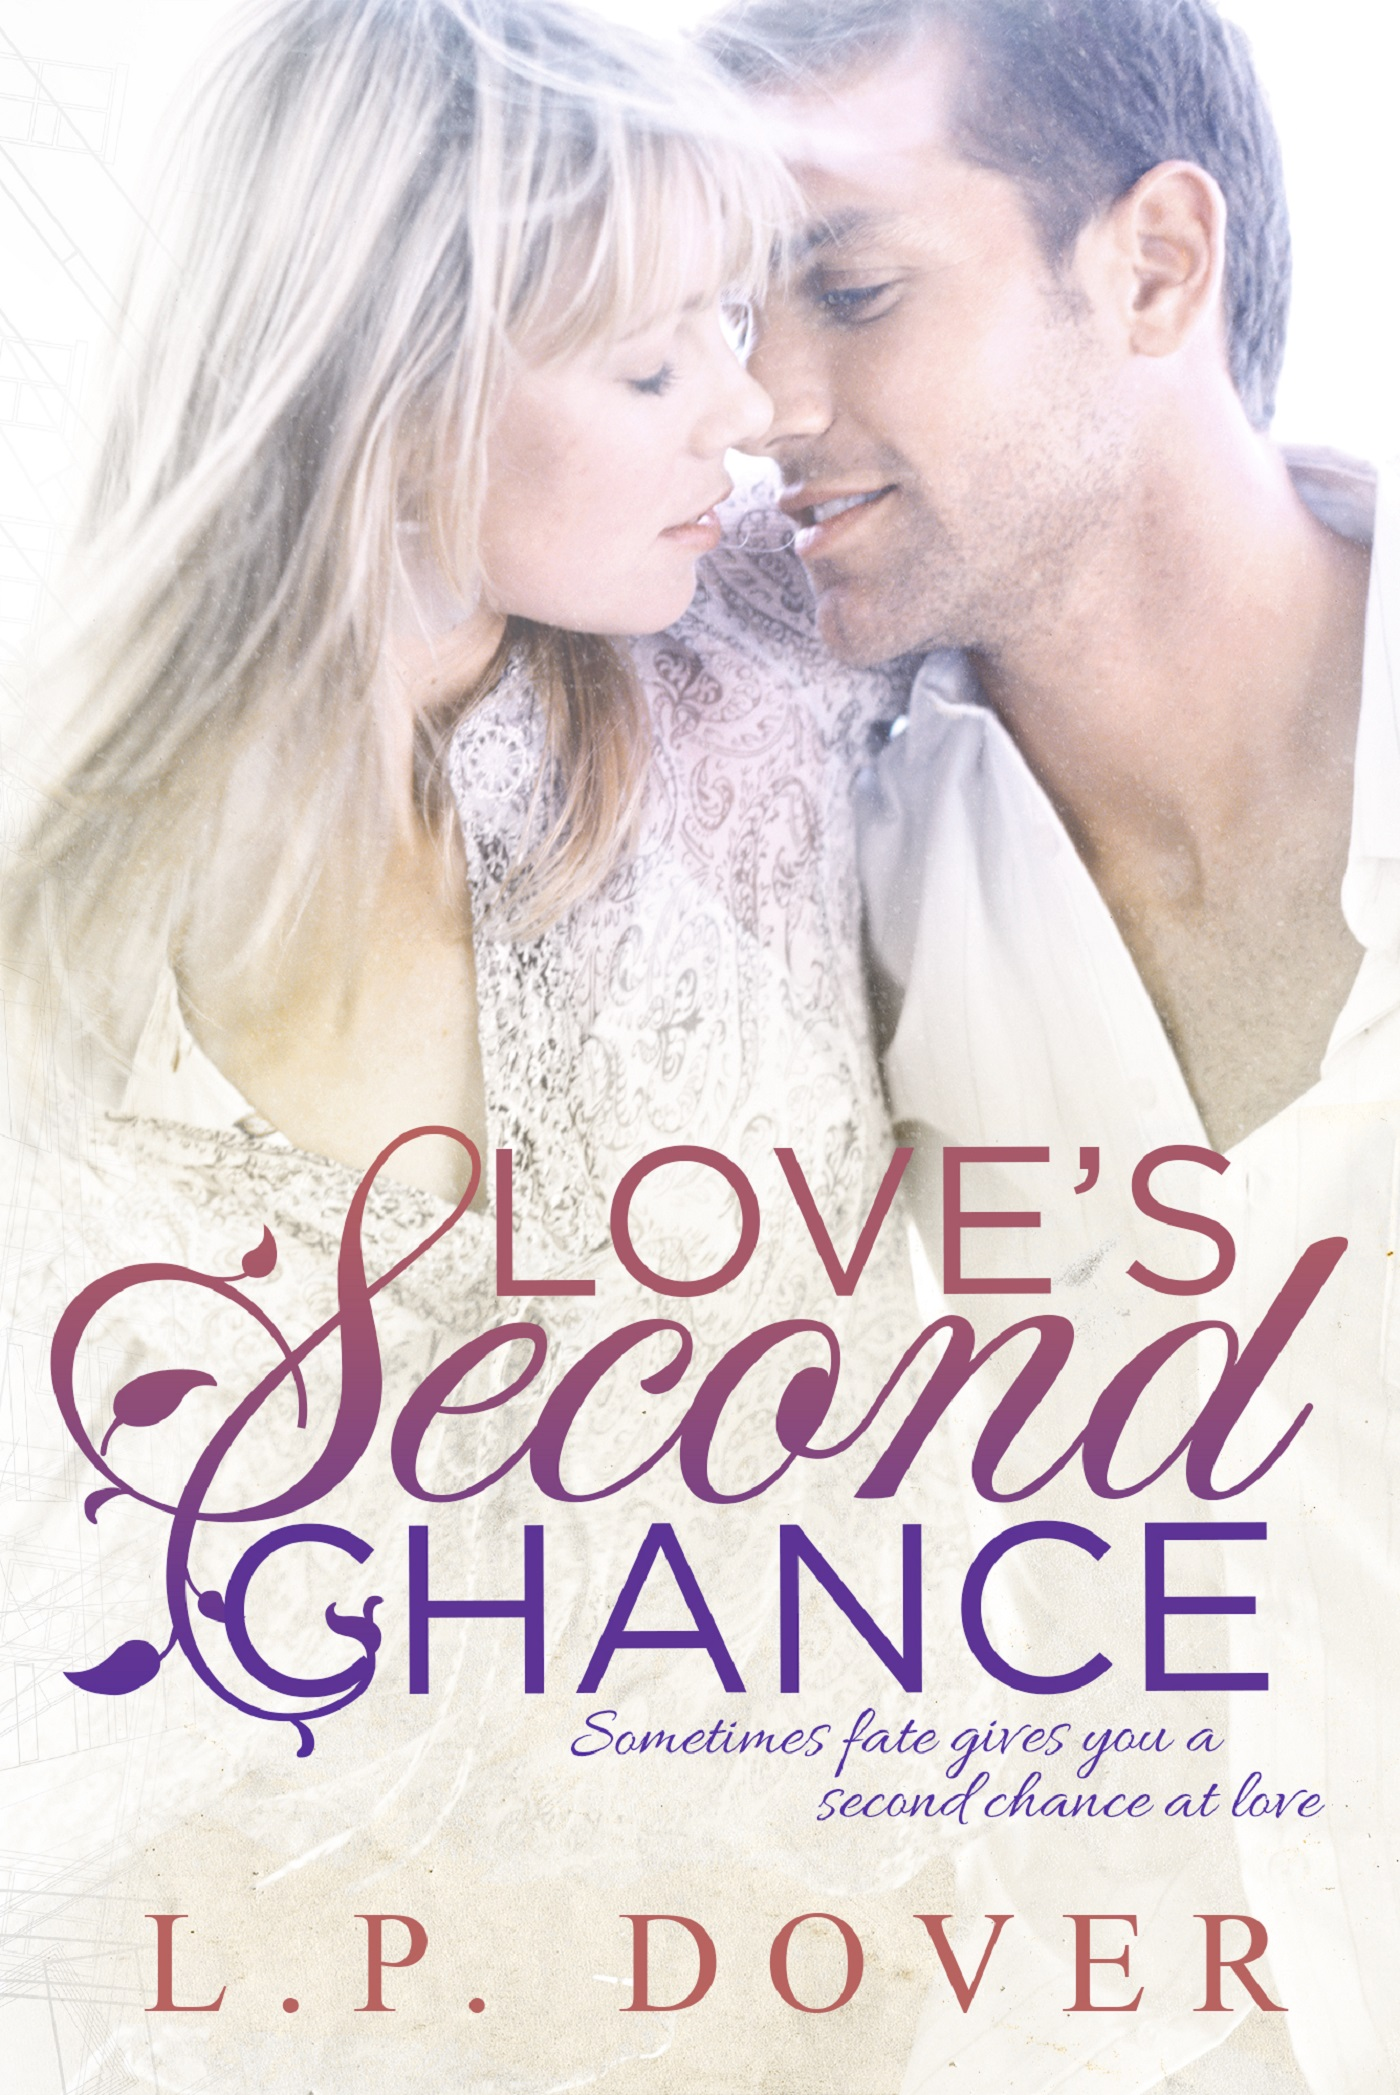 Love's Second Chance (sst)